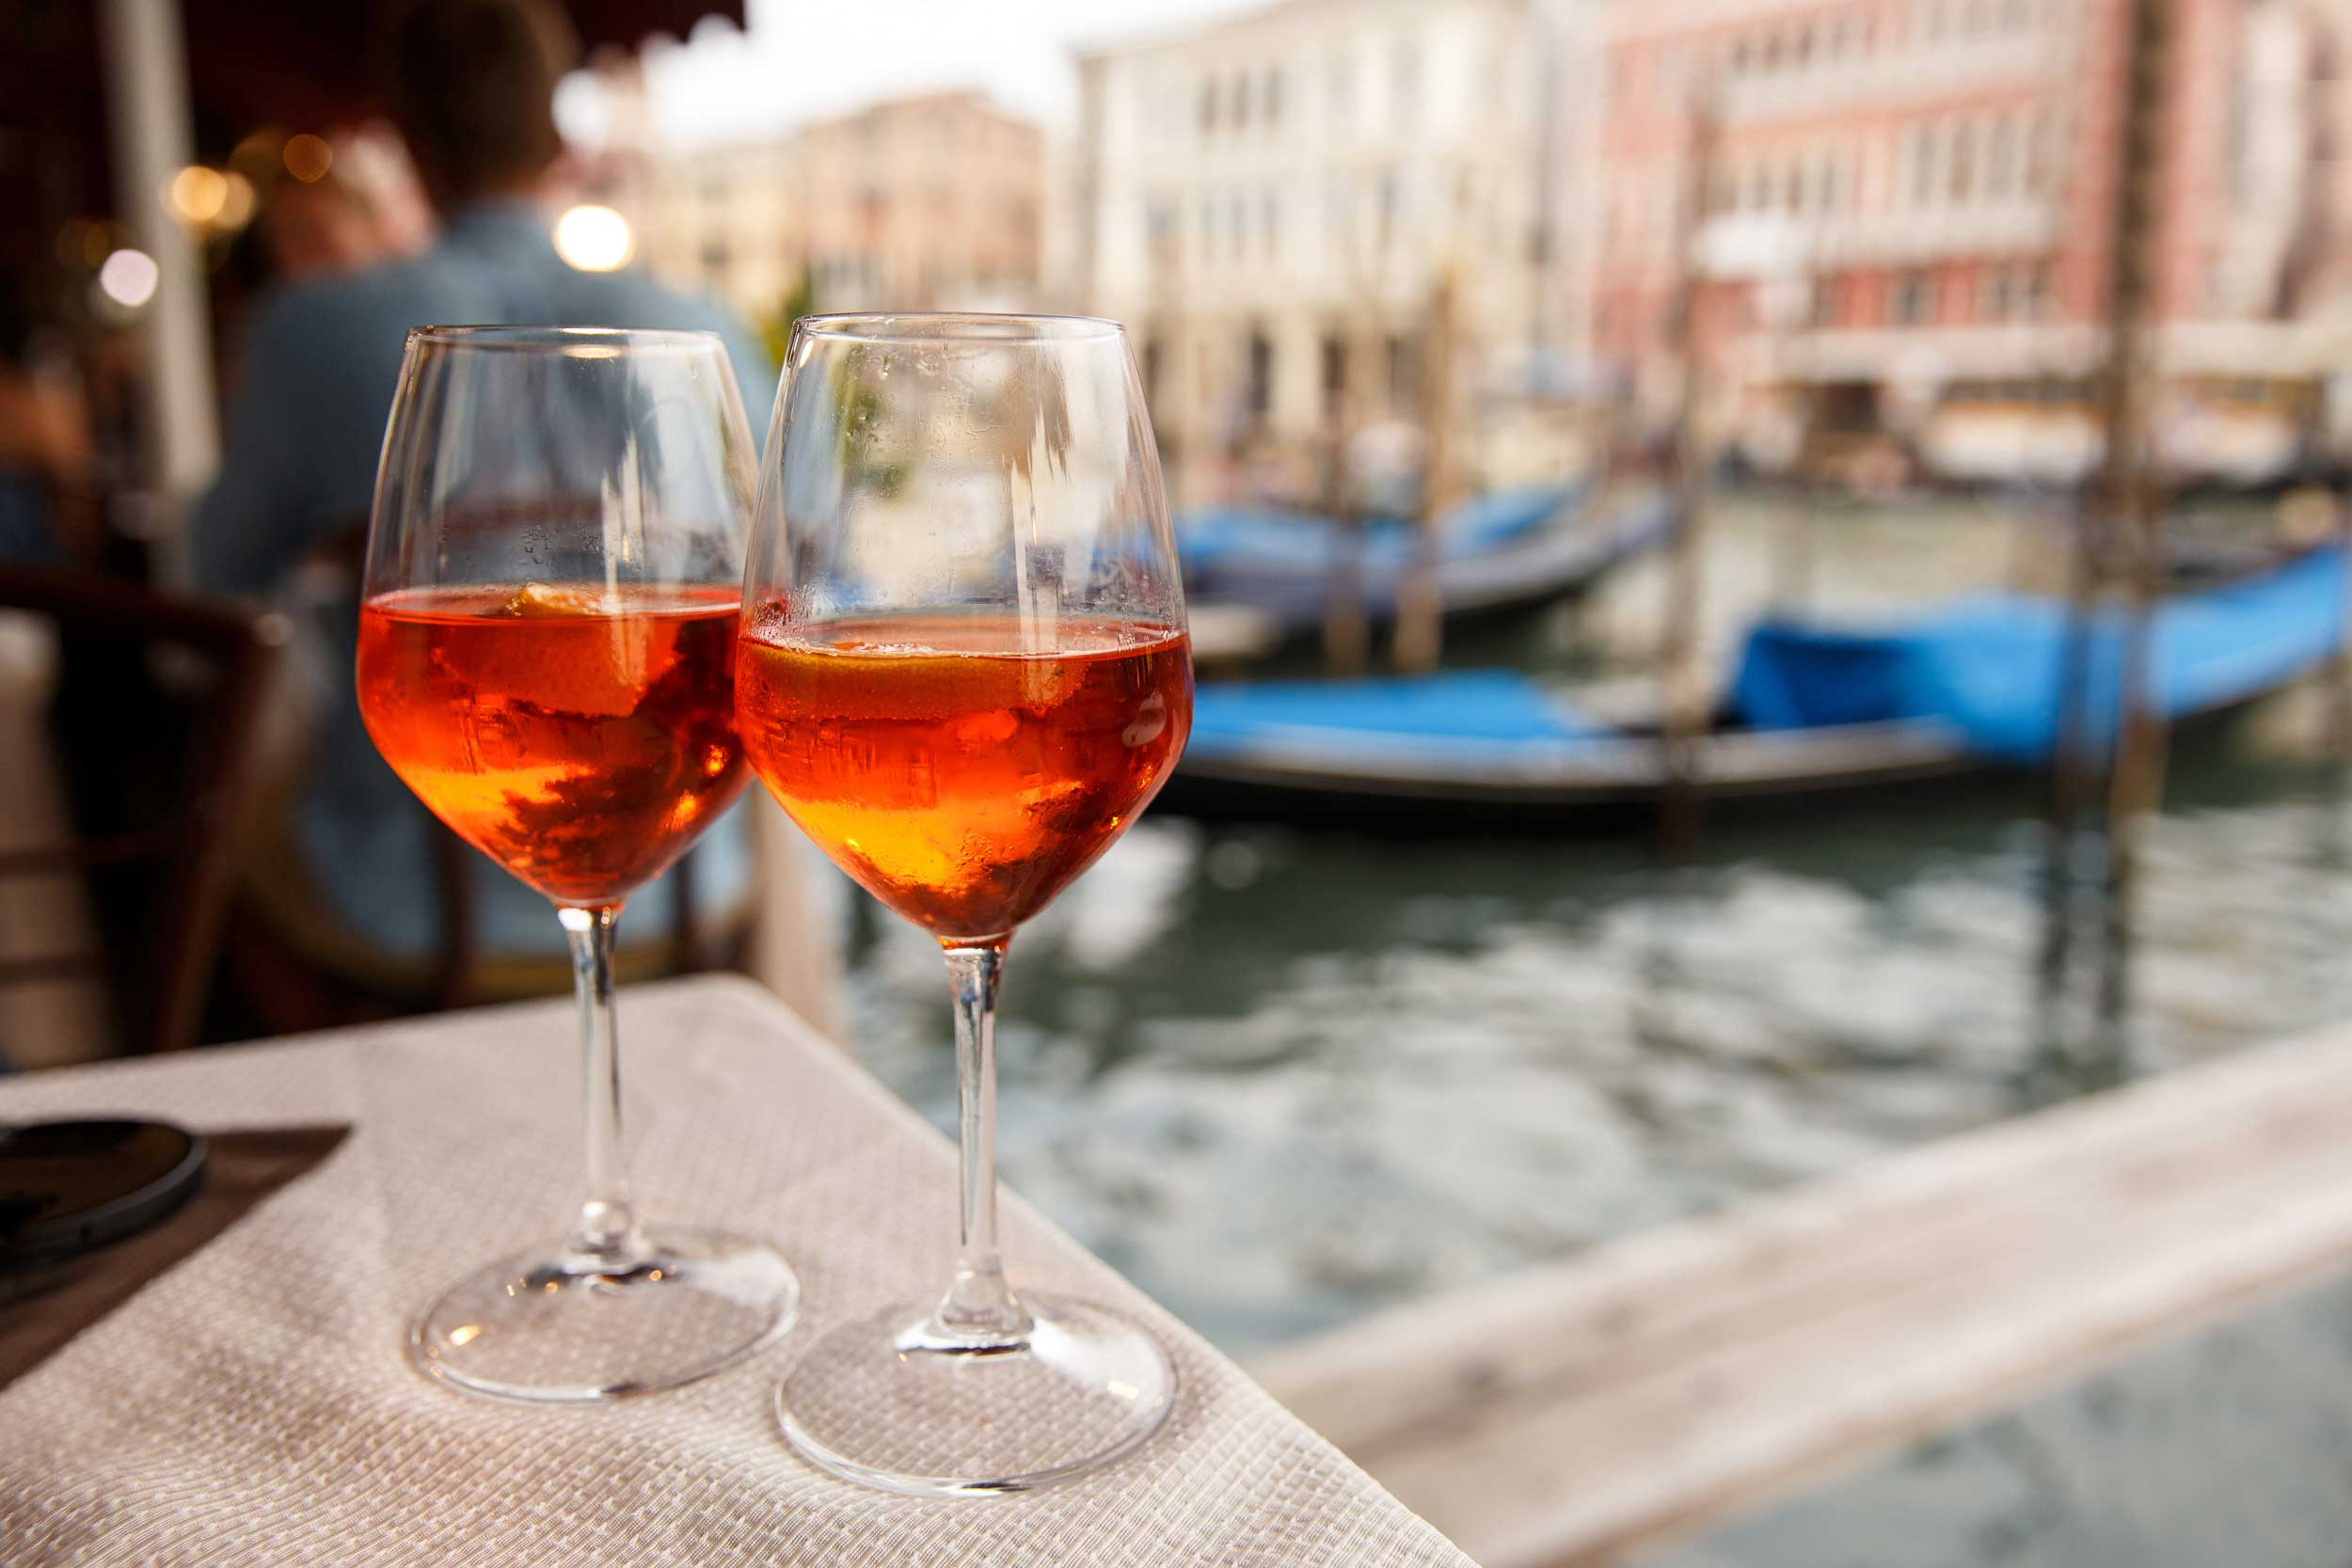 Gondola & Happyhour with a sommelier guide